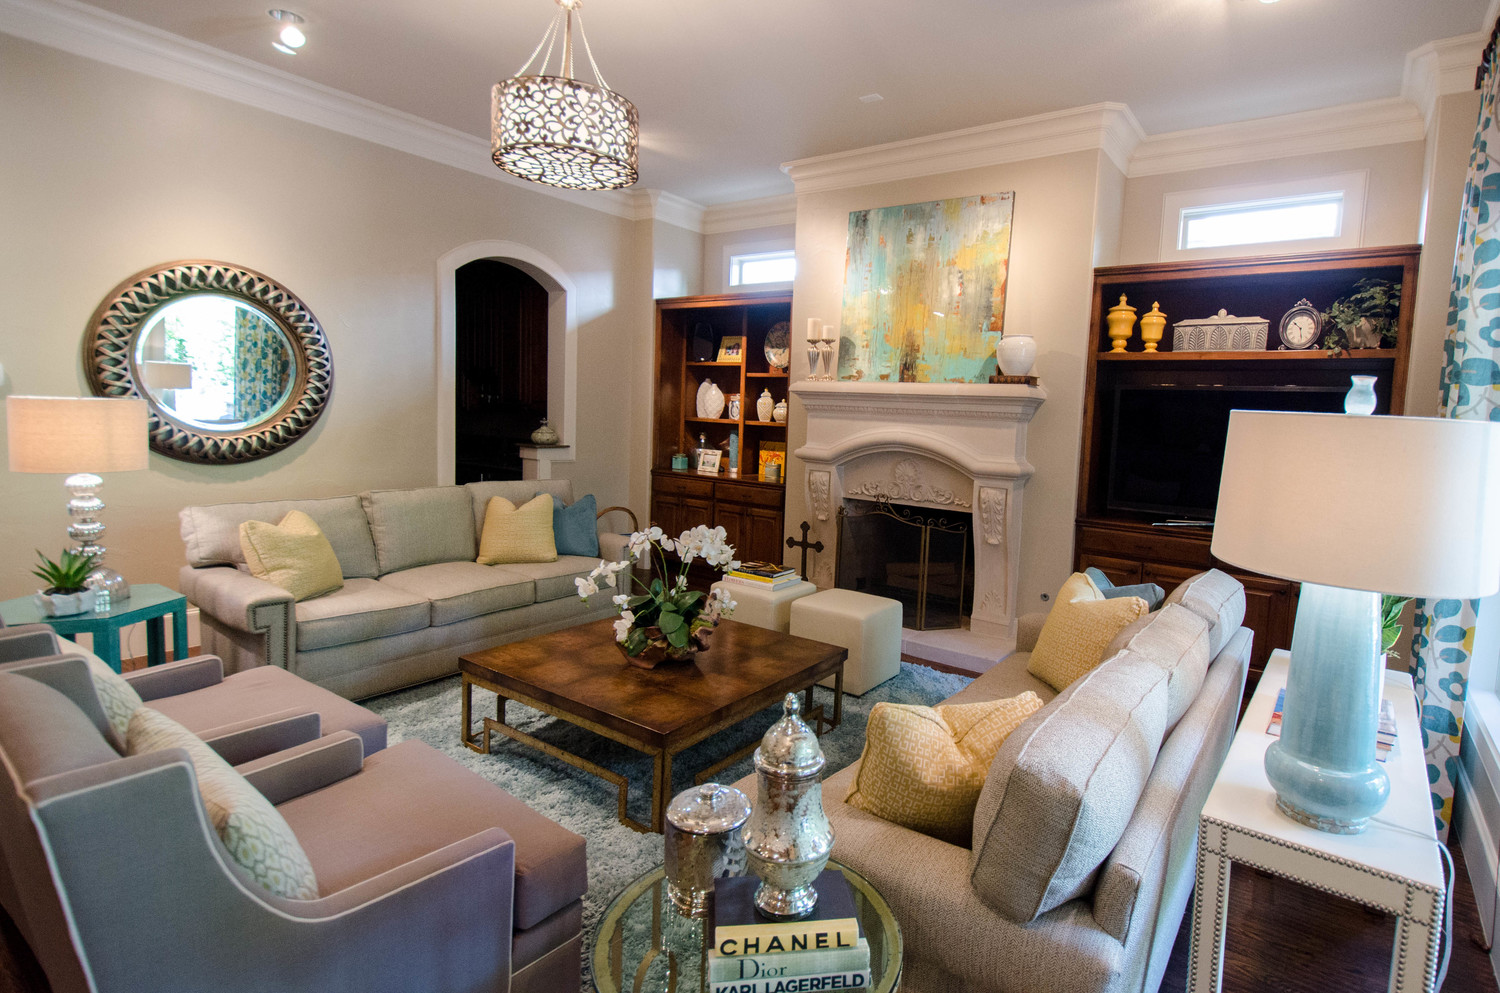 Teal and yellow transitional family room